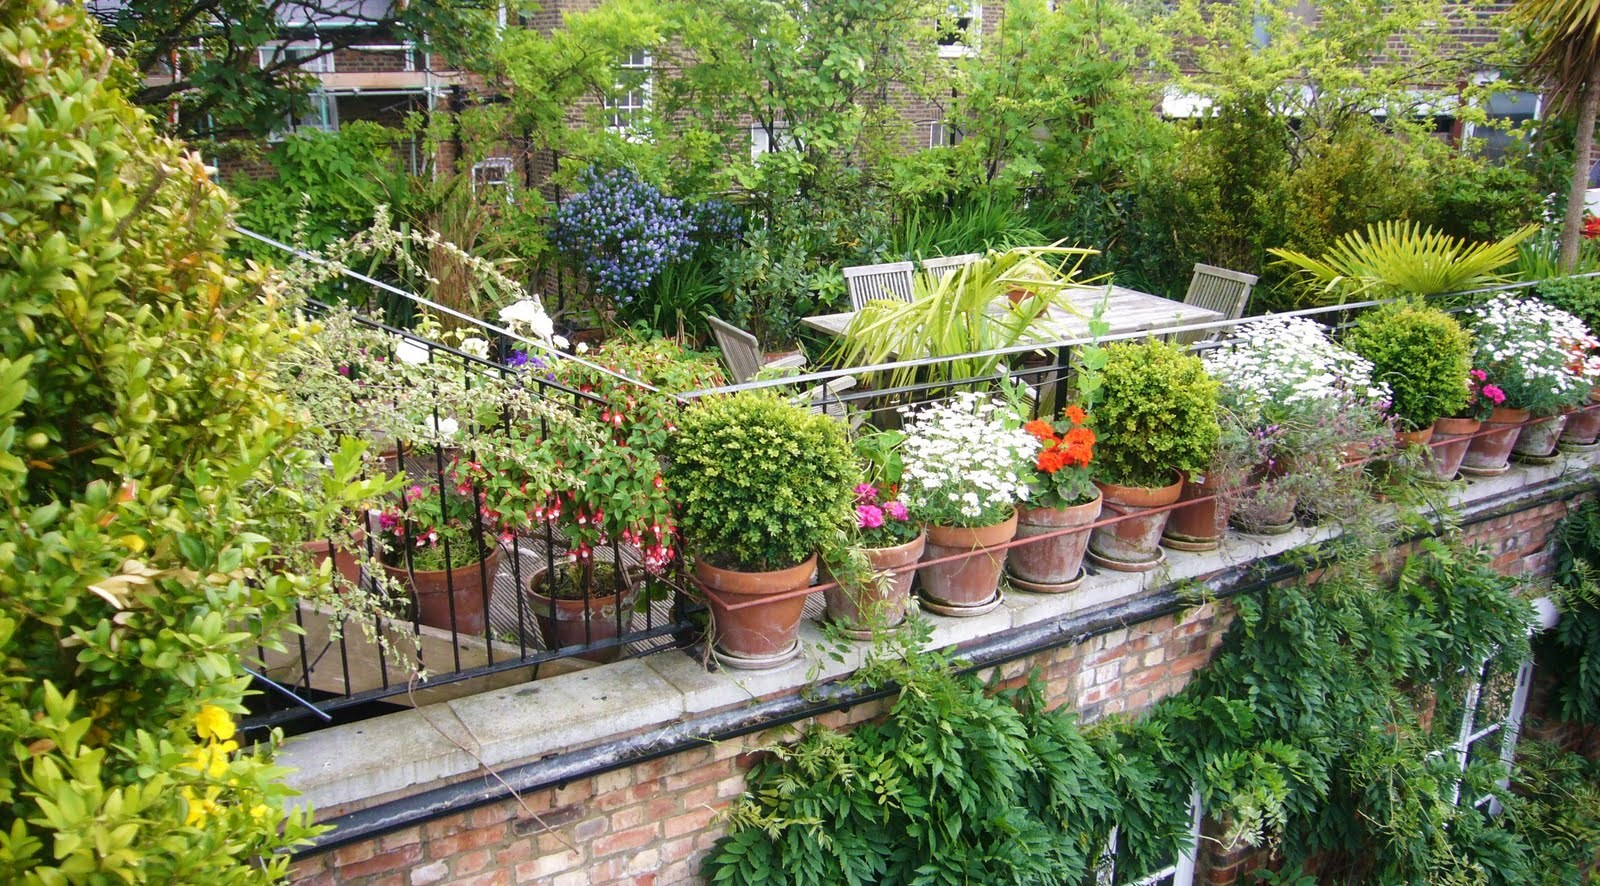 Fabulous space saving designs for the rooftop garden for Rooftop garden designs